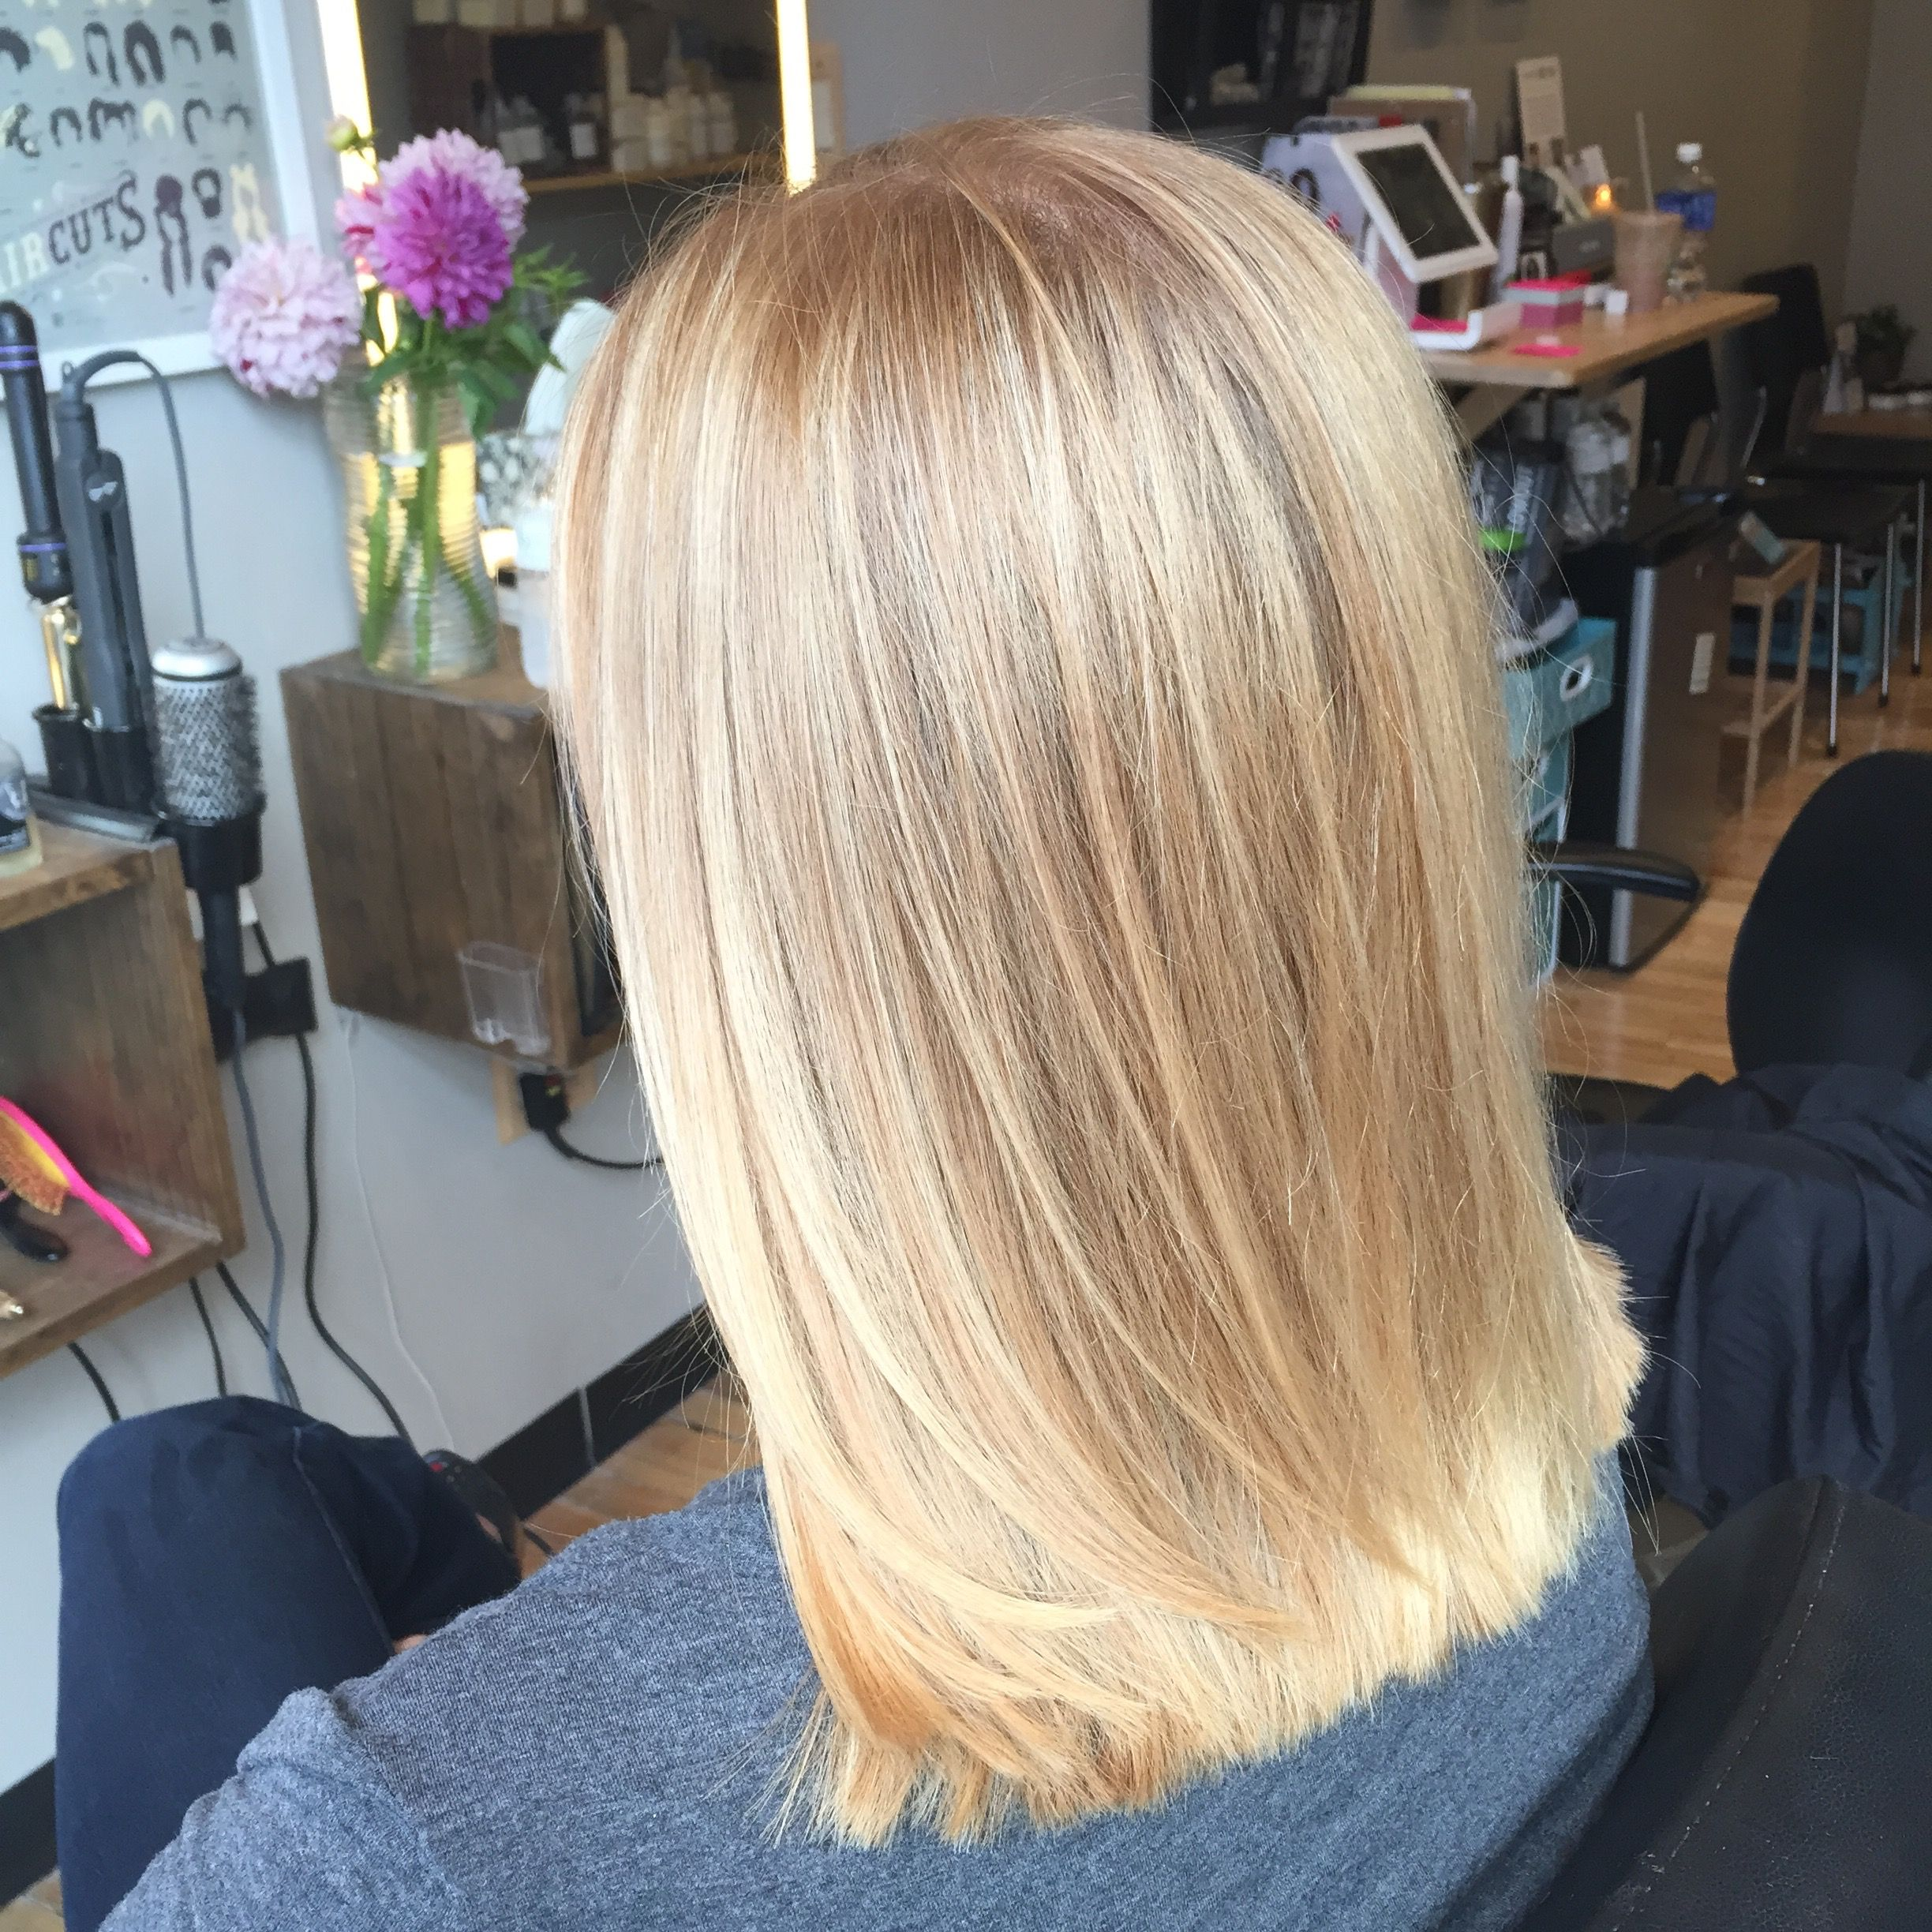 Butter Blonde Balayage Hair Painting Sandy Blonde Bright